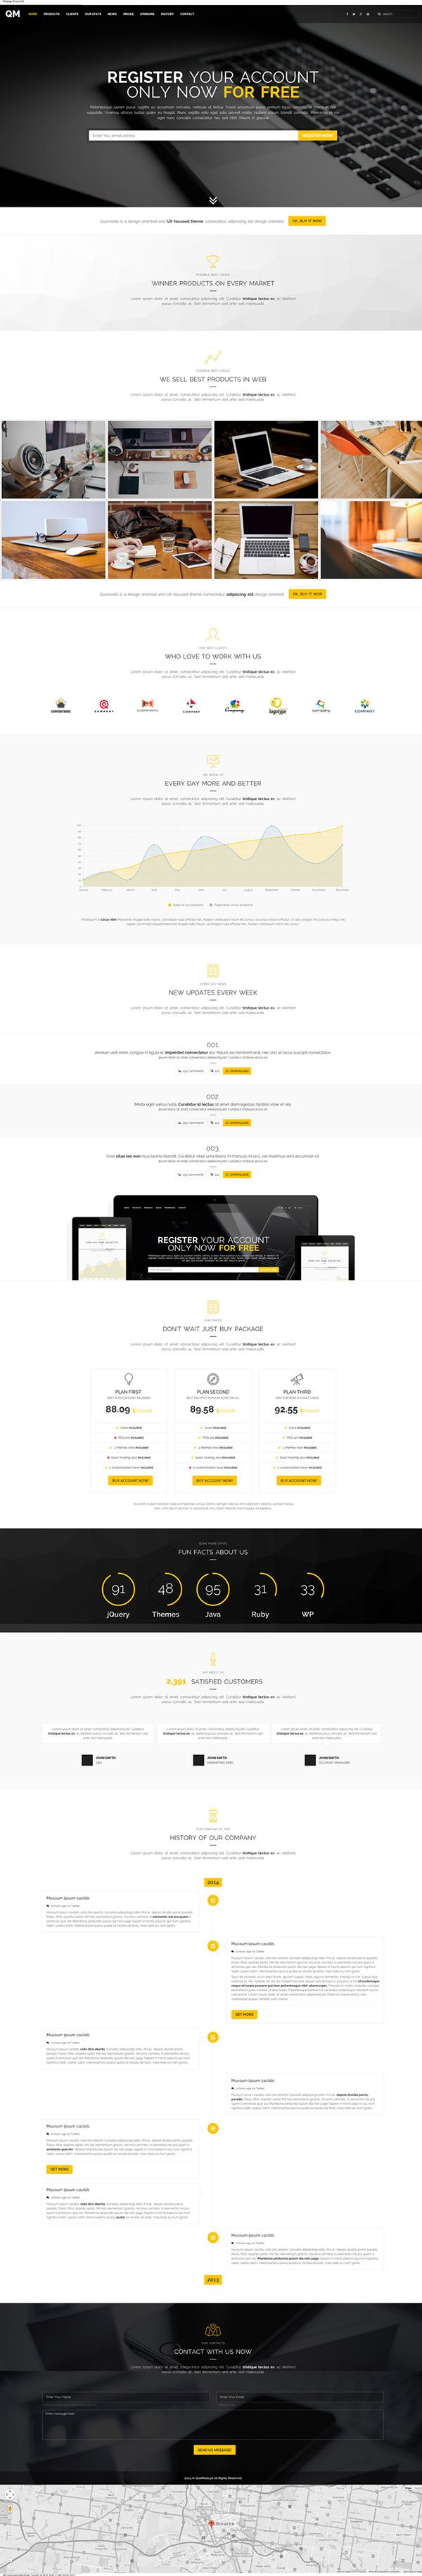 Responsive clean website webdesign . Multipurpose Premium Landing Page Design .  Get it from here - http://themeforest.net/item/multipurpose-landing-page/9768342